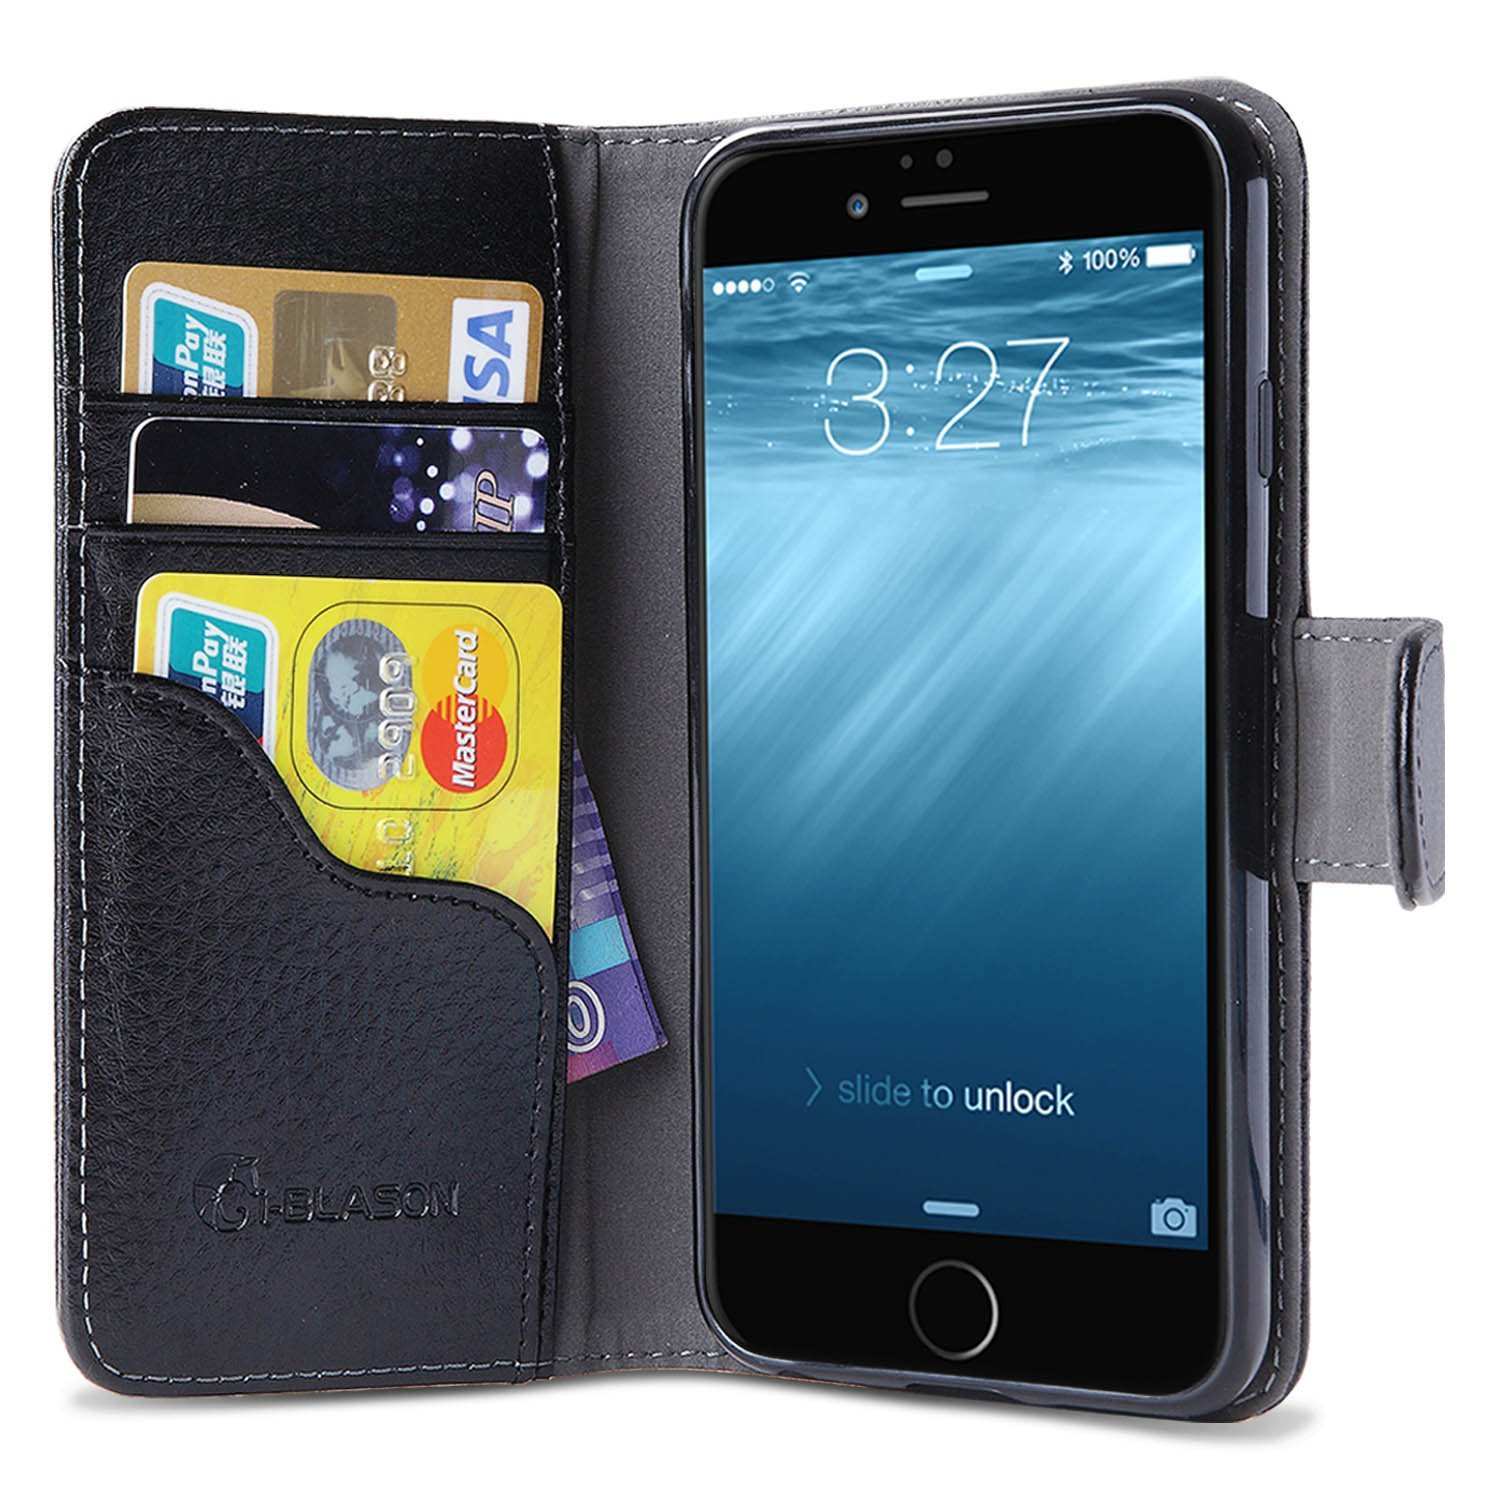 iPhone 6s Plus Case, Wallet Case i-Blason,  Apple iPhone 6 Plus Case 5.5 Inch Leather Cover with Credit Card-Black